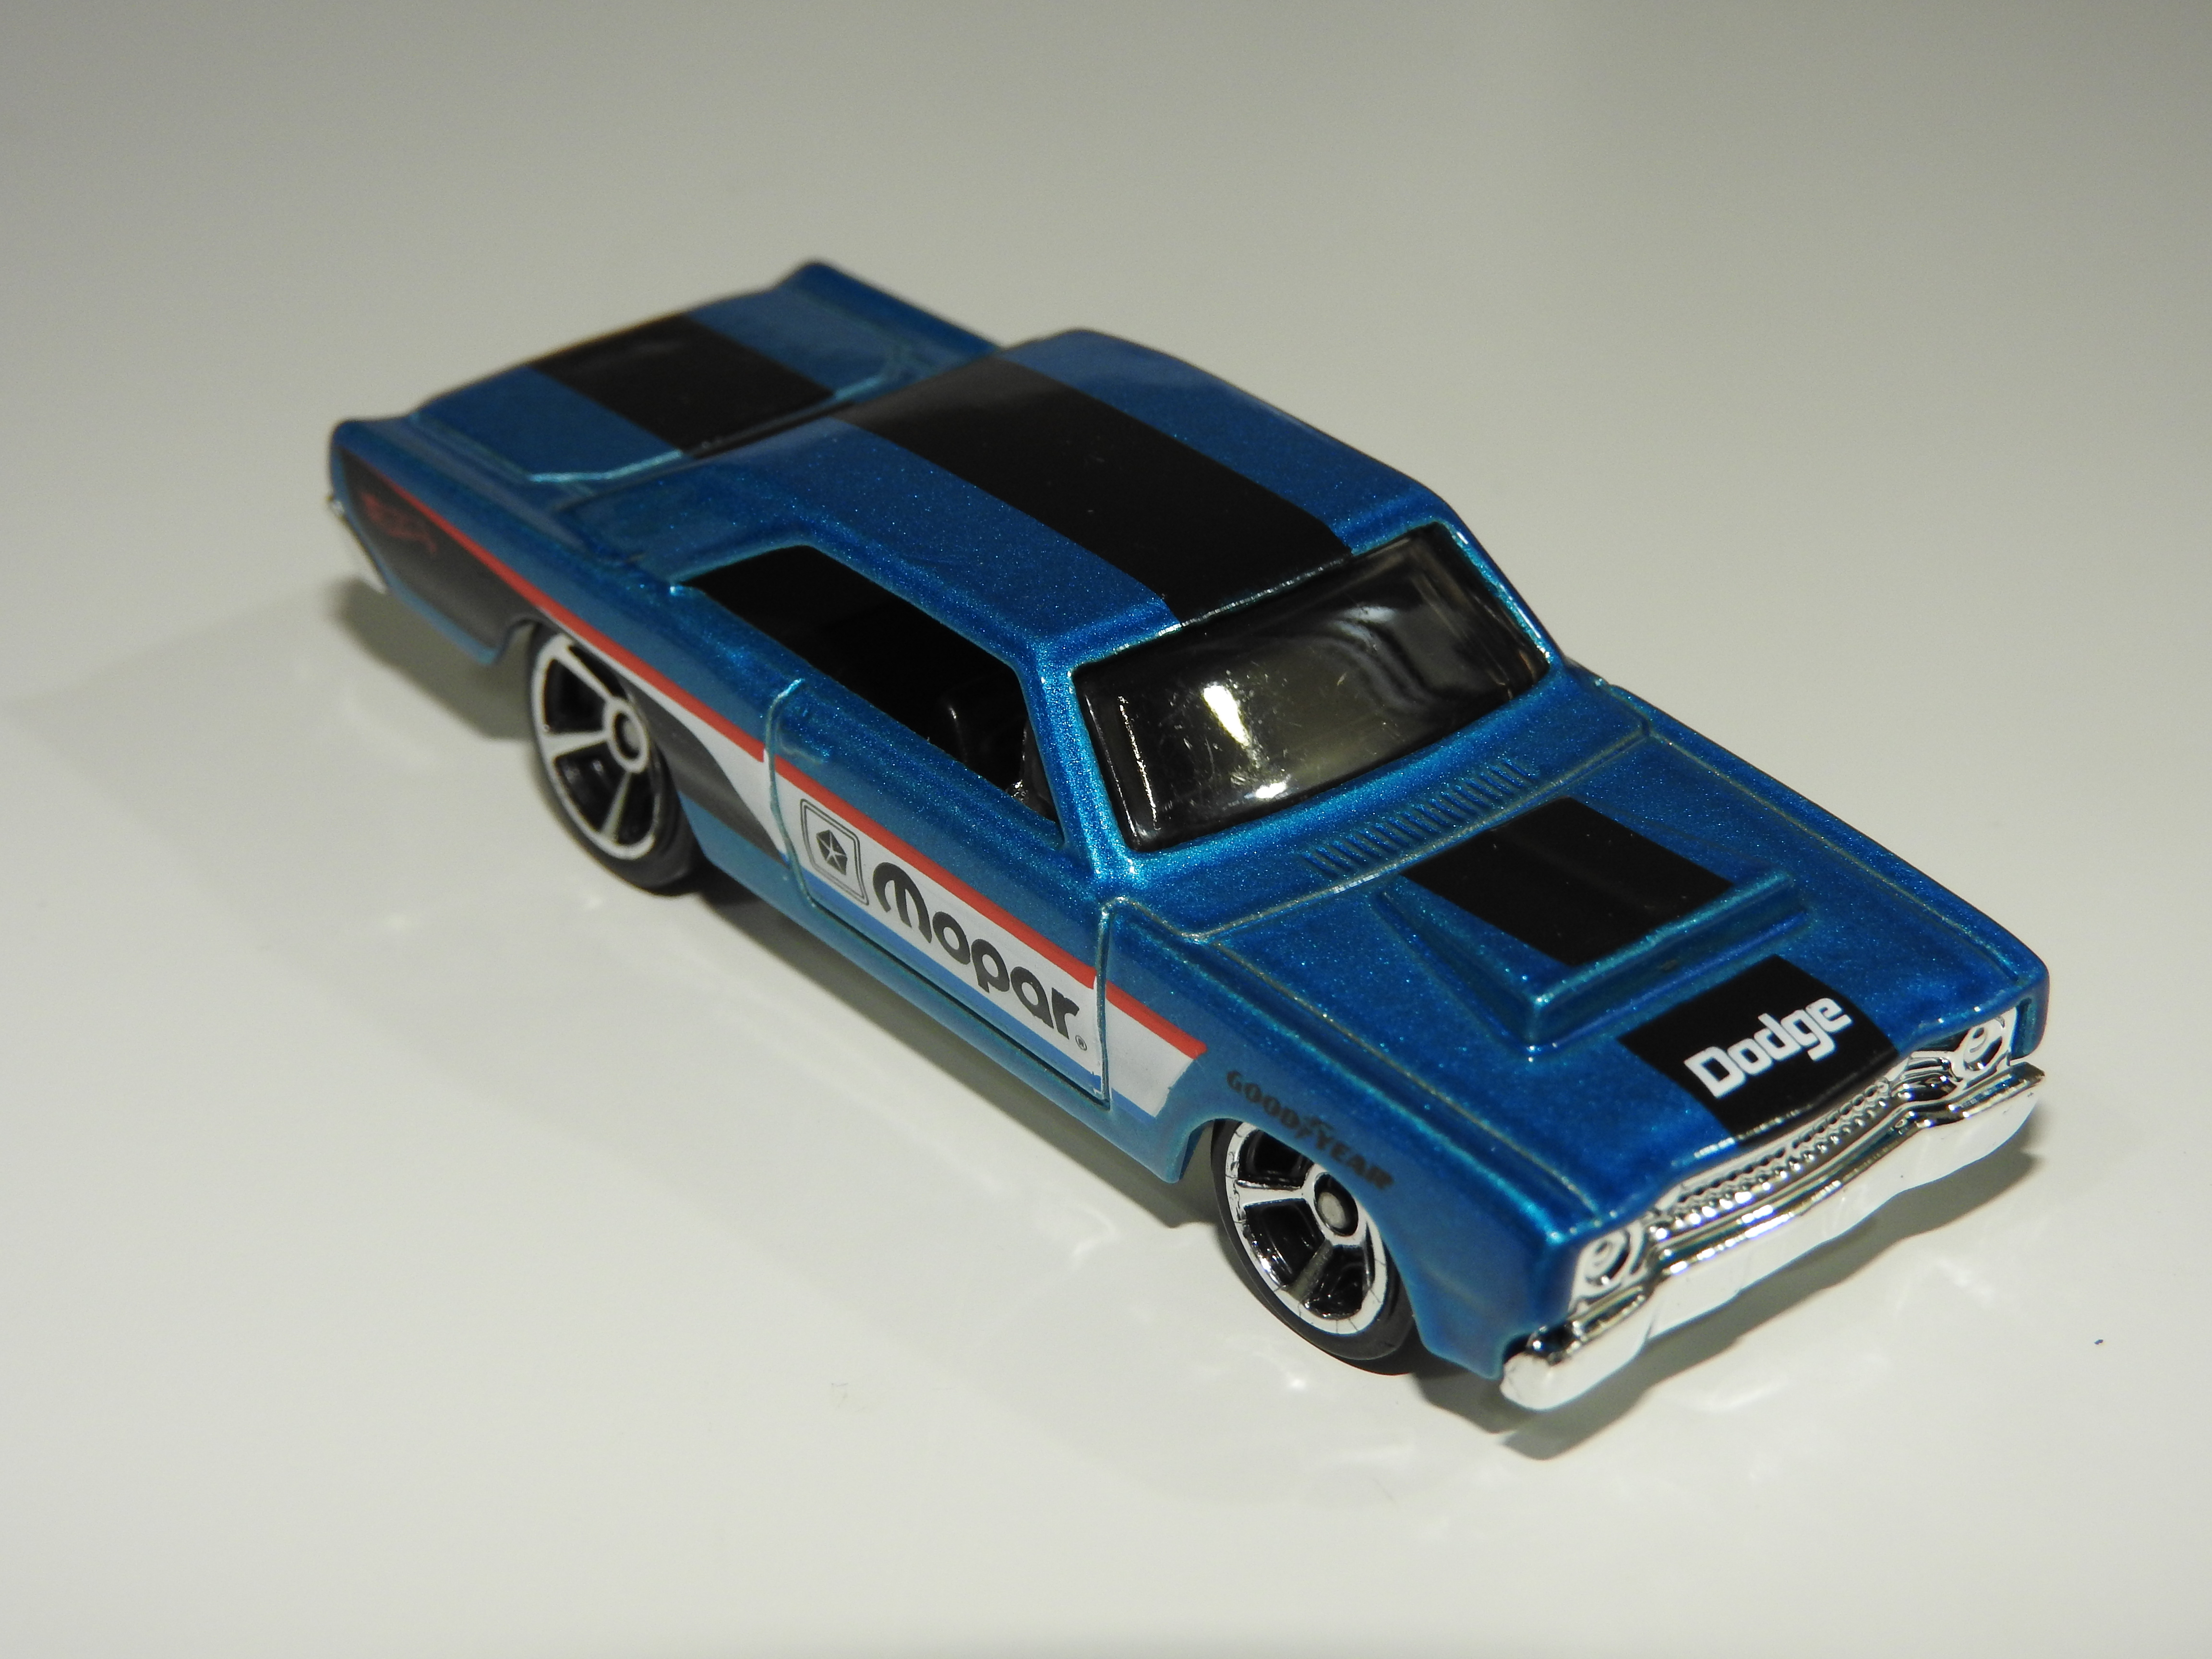 2004 HOT WHEELS CLASSICS 1970 DODGE DART PINK AND WHITE SERIES 1 # 3 OF 25